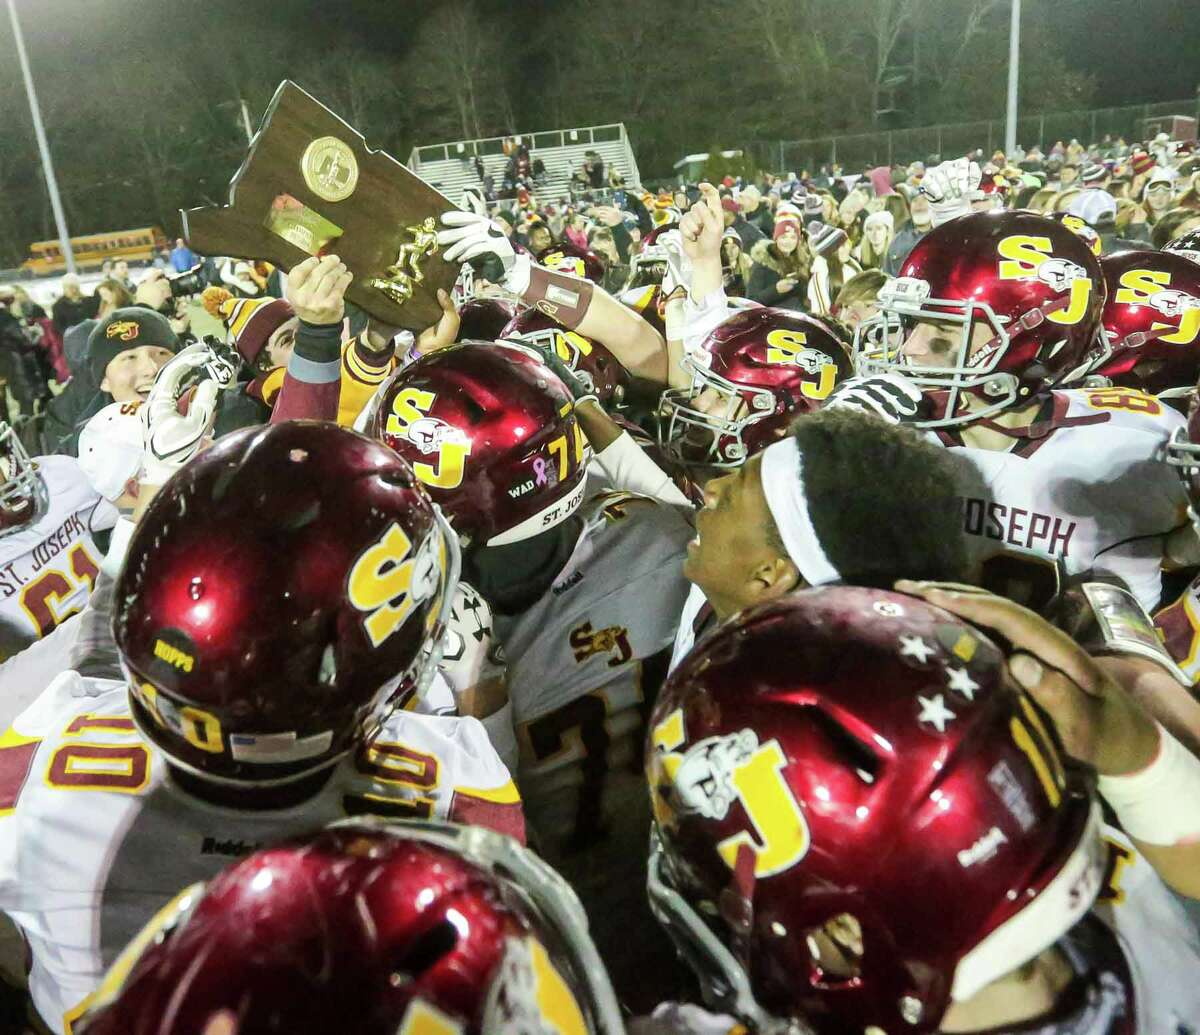 (John Vanacore/for Hearst Connecticut Media) The St Josephs Cadets celebrate their 42-36 win over Ansonia to capture the 2017 CIAC Class S football title Monday night in Cheshire